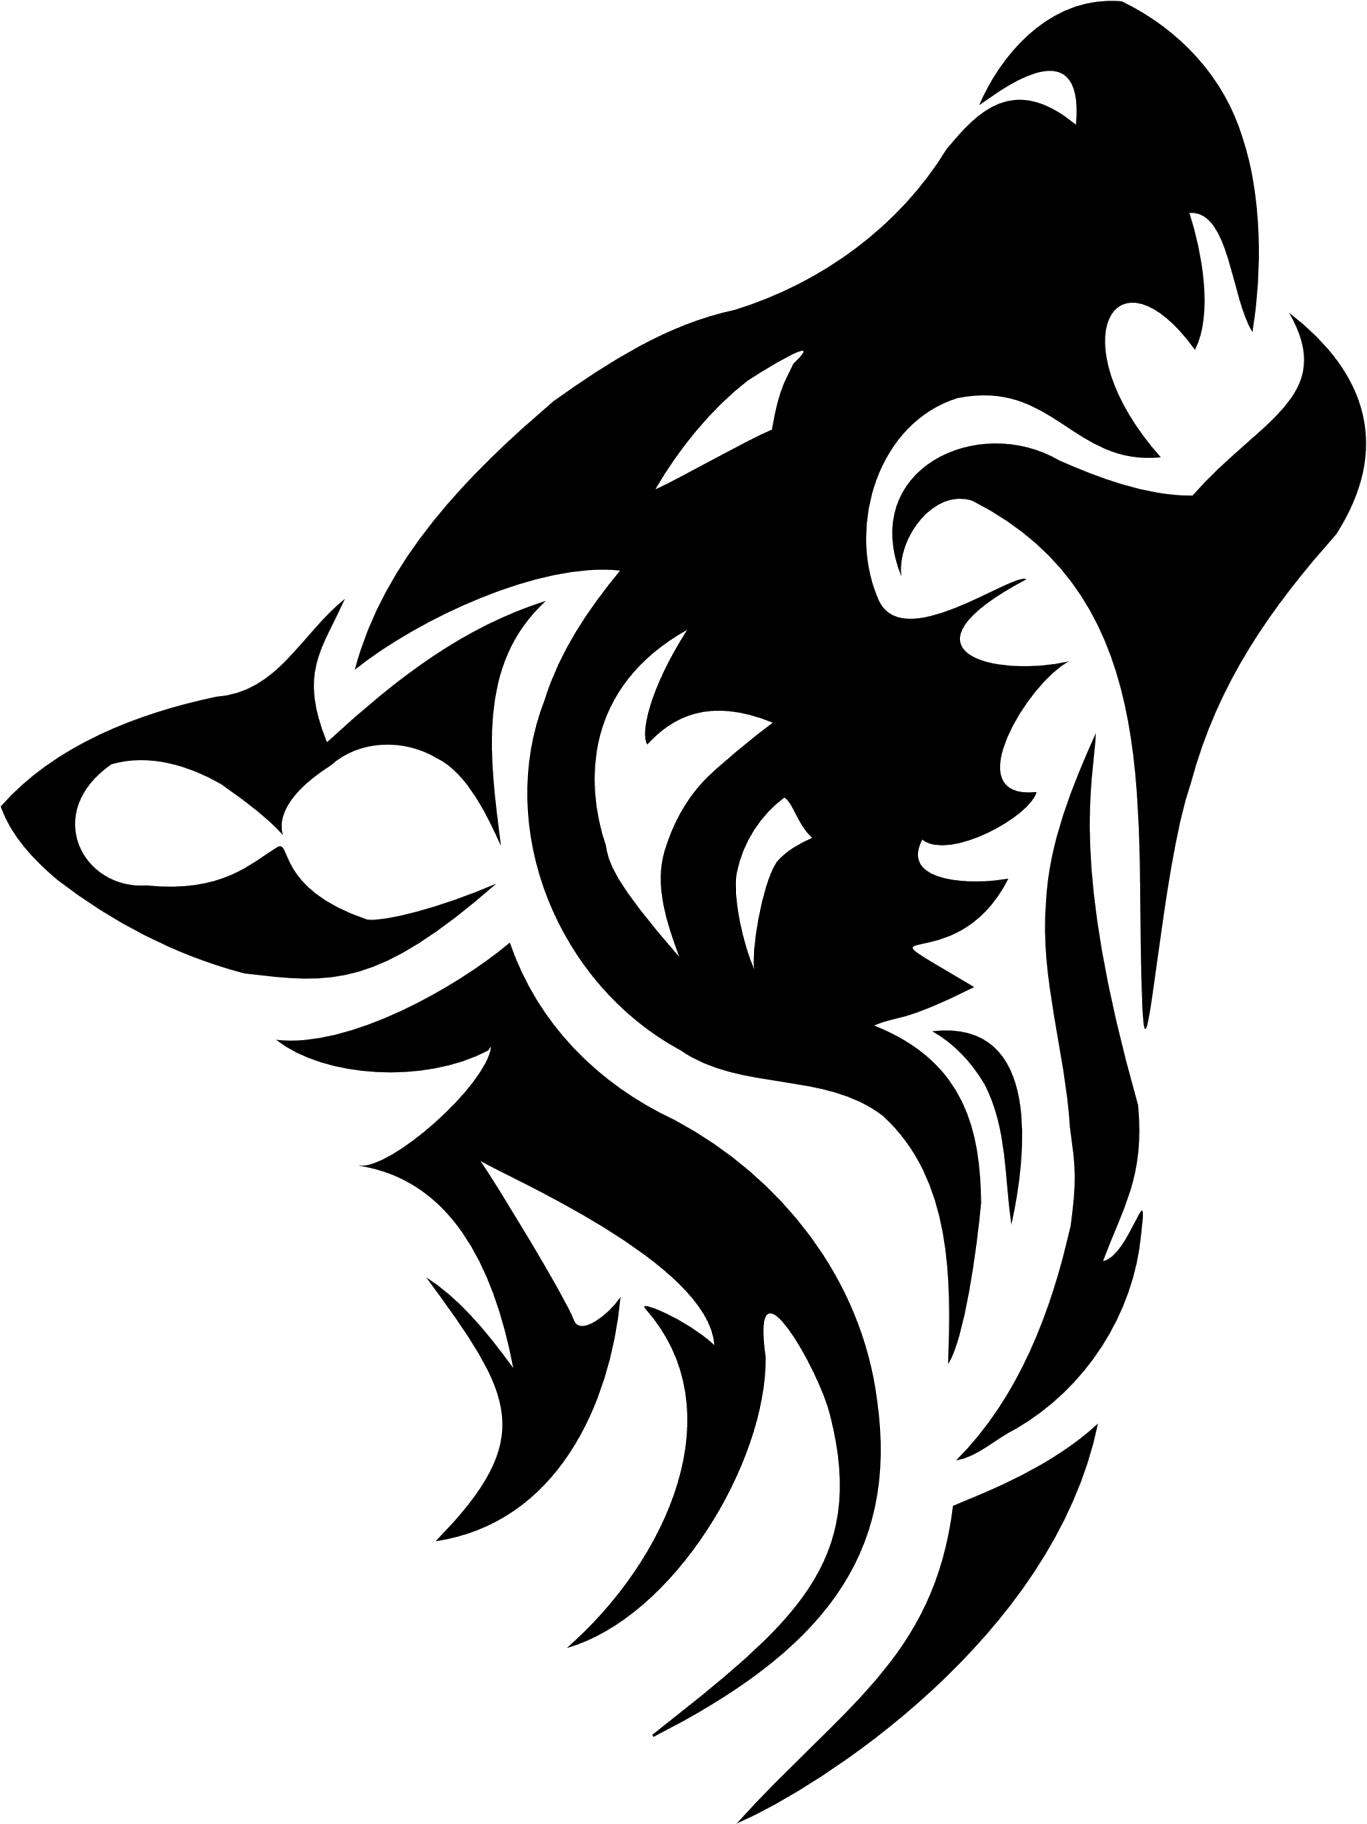 Cat tattoo clipart graphic black and white download Wolf Tattoos PNG Transparent Images | PNG All | Wolves | Pinterest ... graphic black and white download